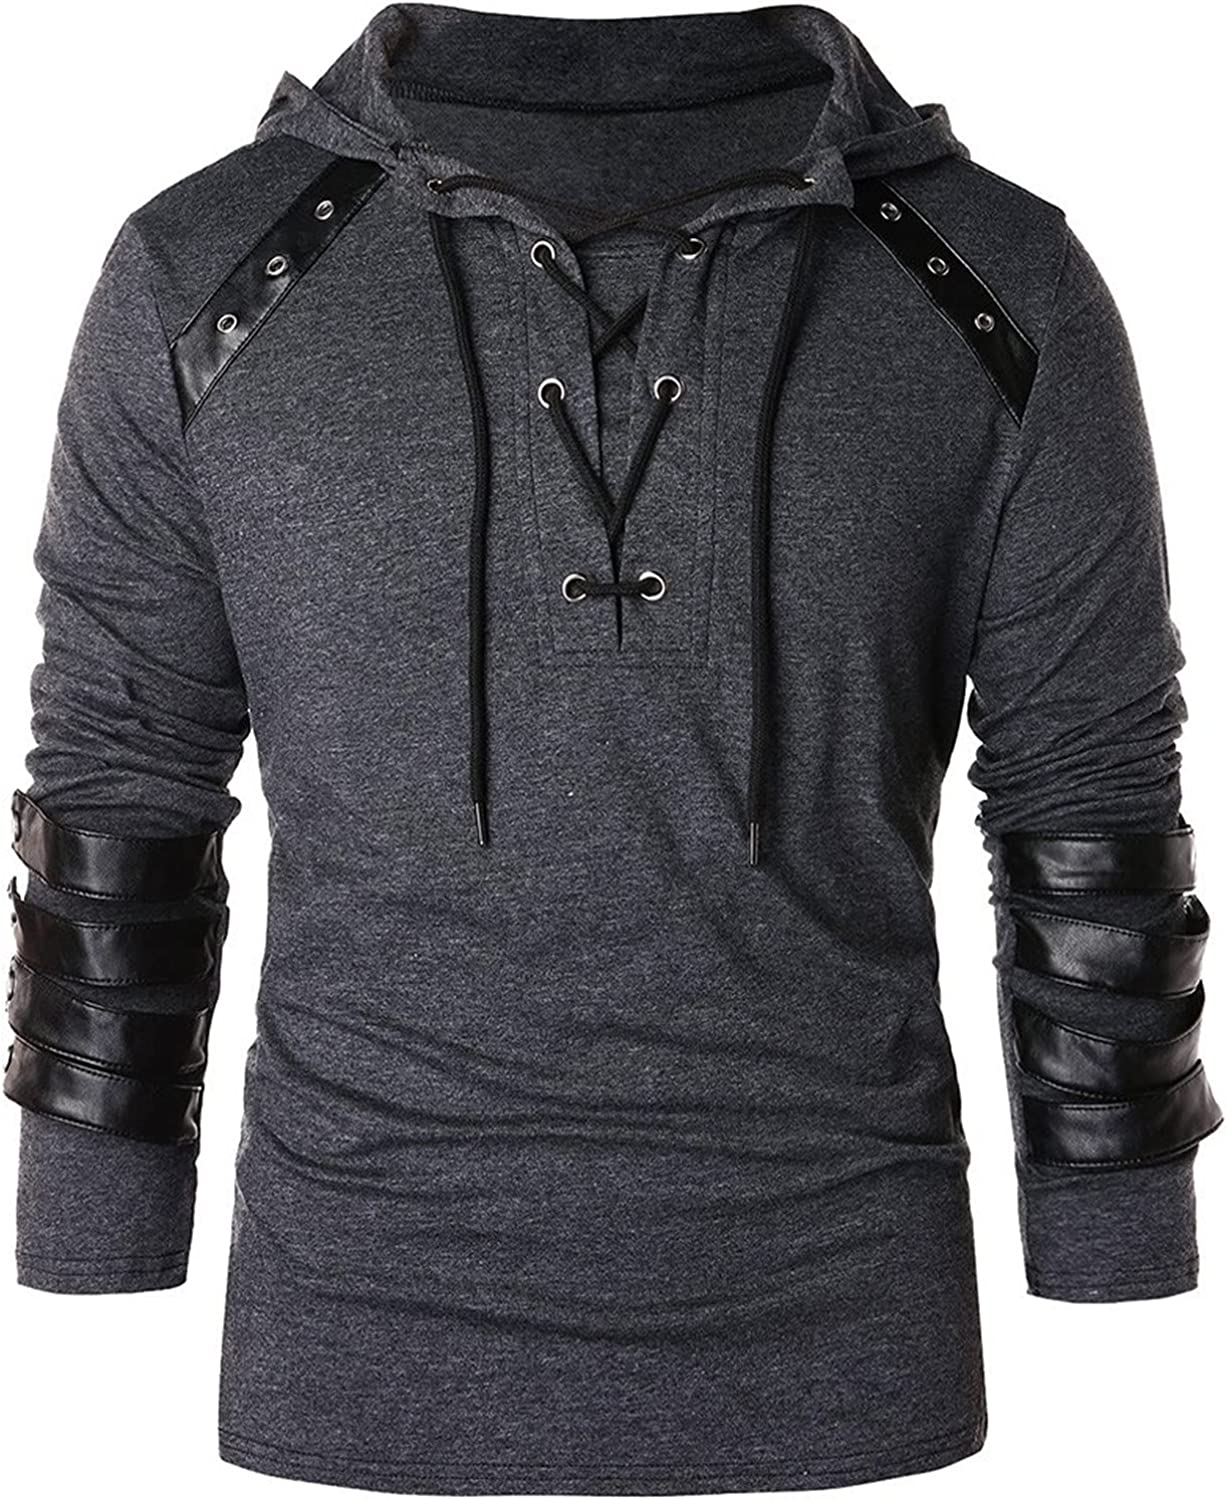 XXBR Gothic Steampunk Shirts for Mens, Lace Up Tether Knight Pullover Hooded Sweatshirts Tops Teen Boys Medieval Jumper